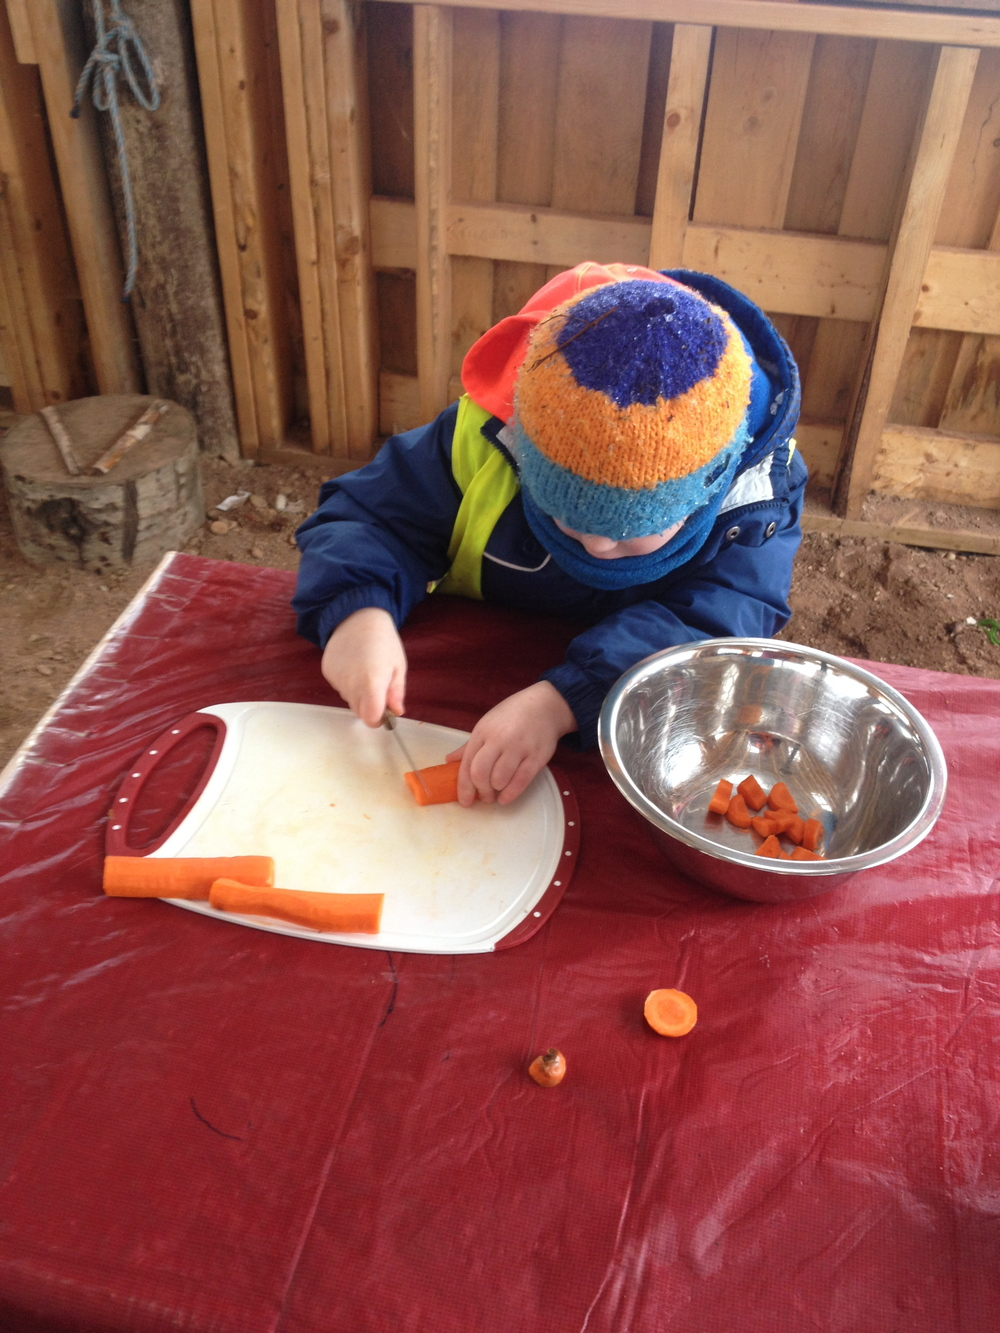 Matthew concentrates on cutting his carrot. Well done, Matthew!